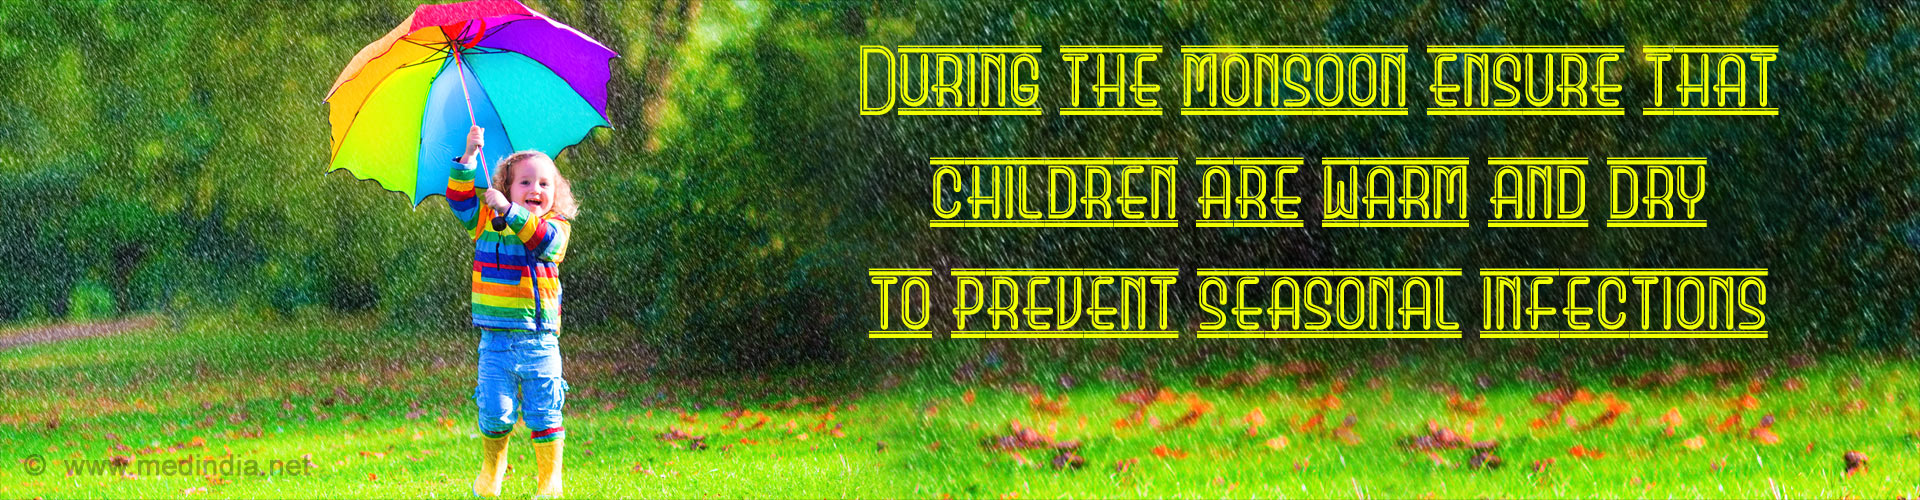 During the monsoon ensure that children are warm and dry to prevent seasonal infections